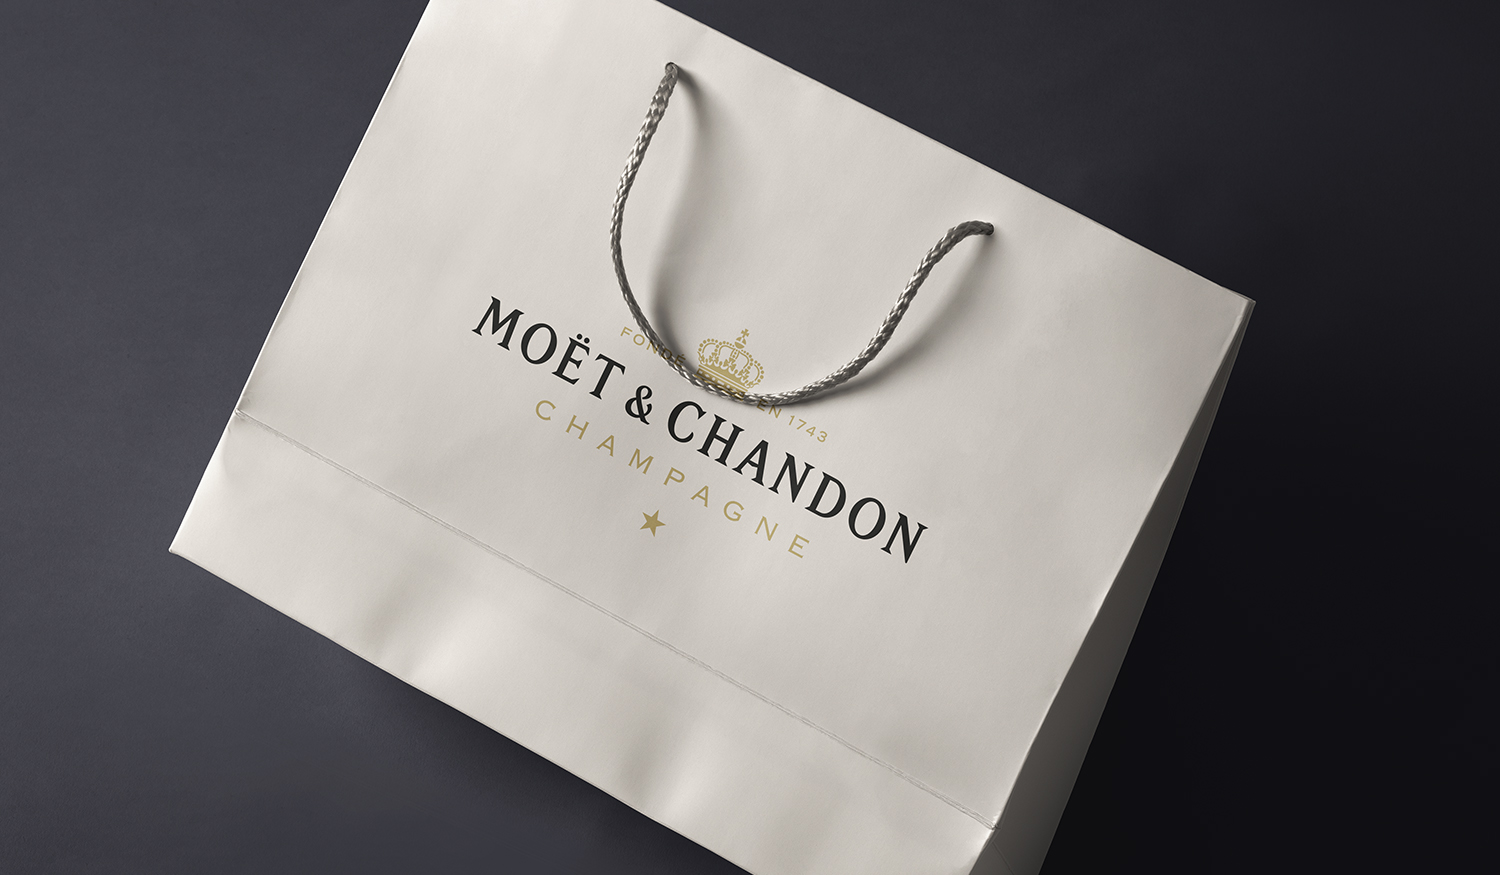 London Fashion Week Collateral:  Black and Gold Foiling on Carry Bags